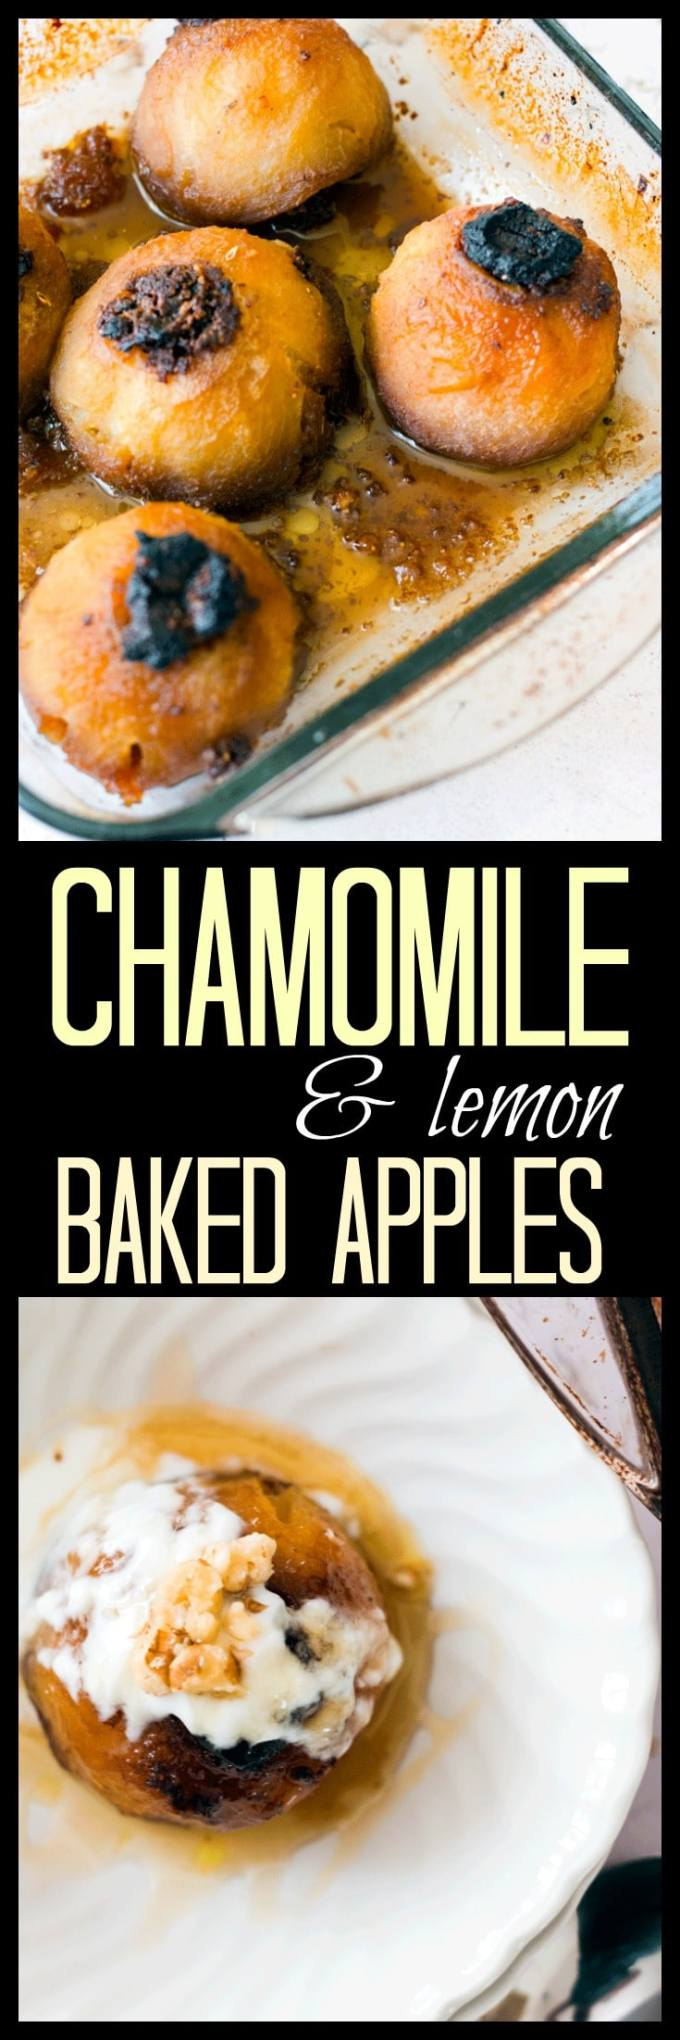 Chamomile and lemon baked apples are fabulous for dessert with some yogurt or ice cream, for breakfast with some granola or frozen and blitzed into a sorbet